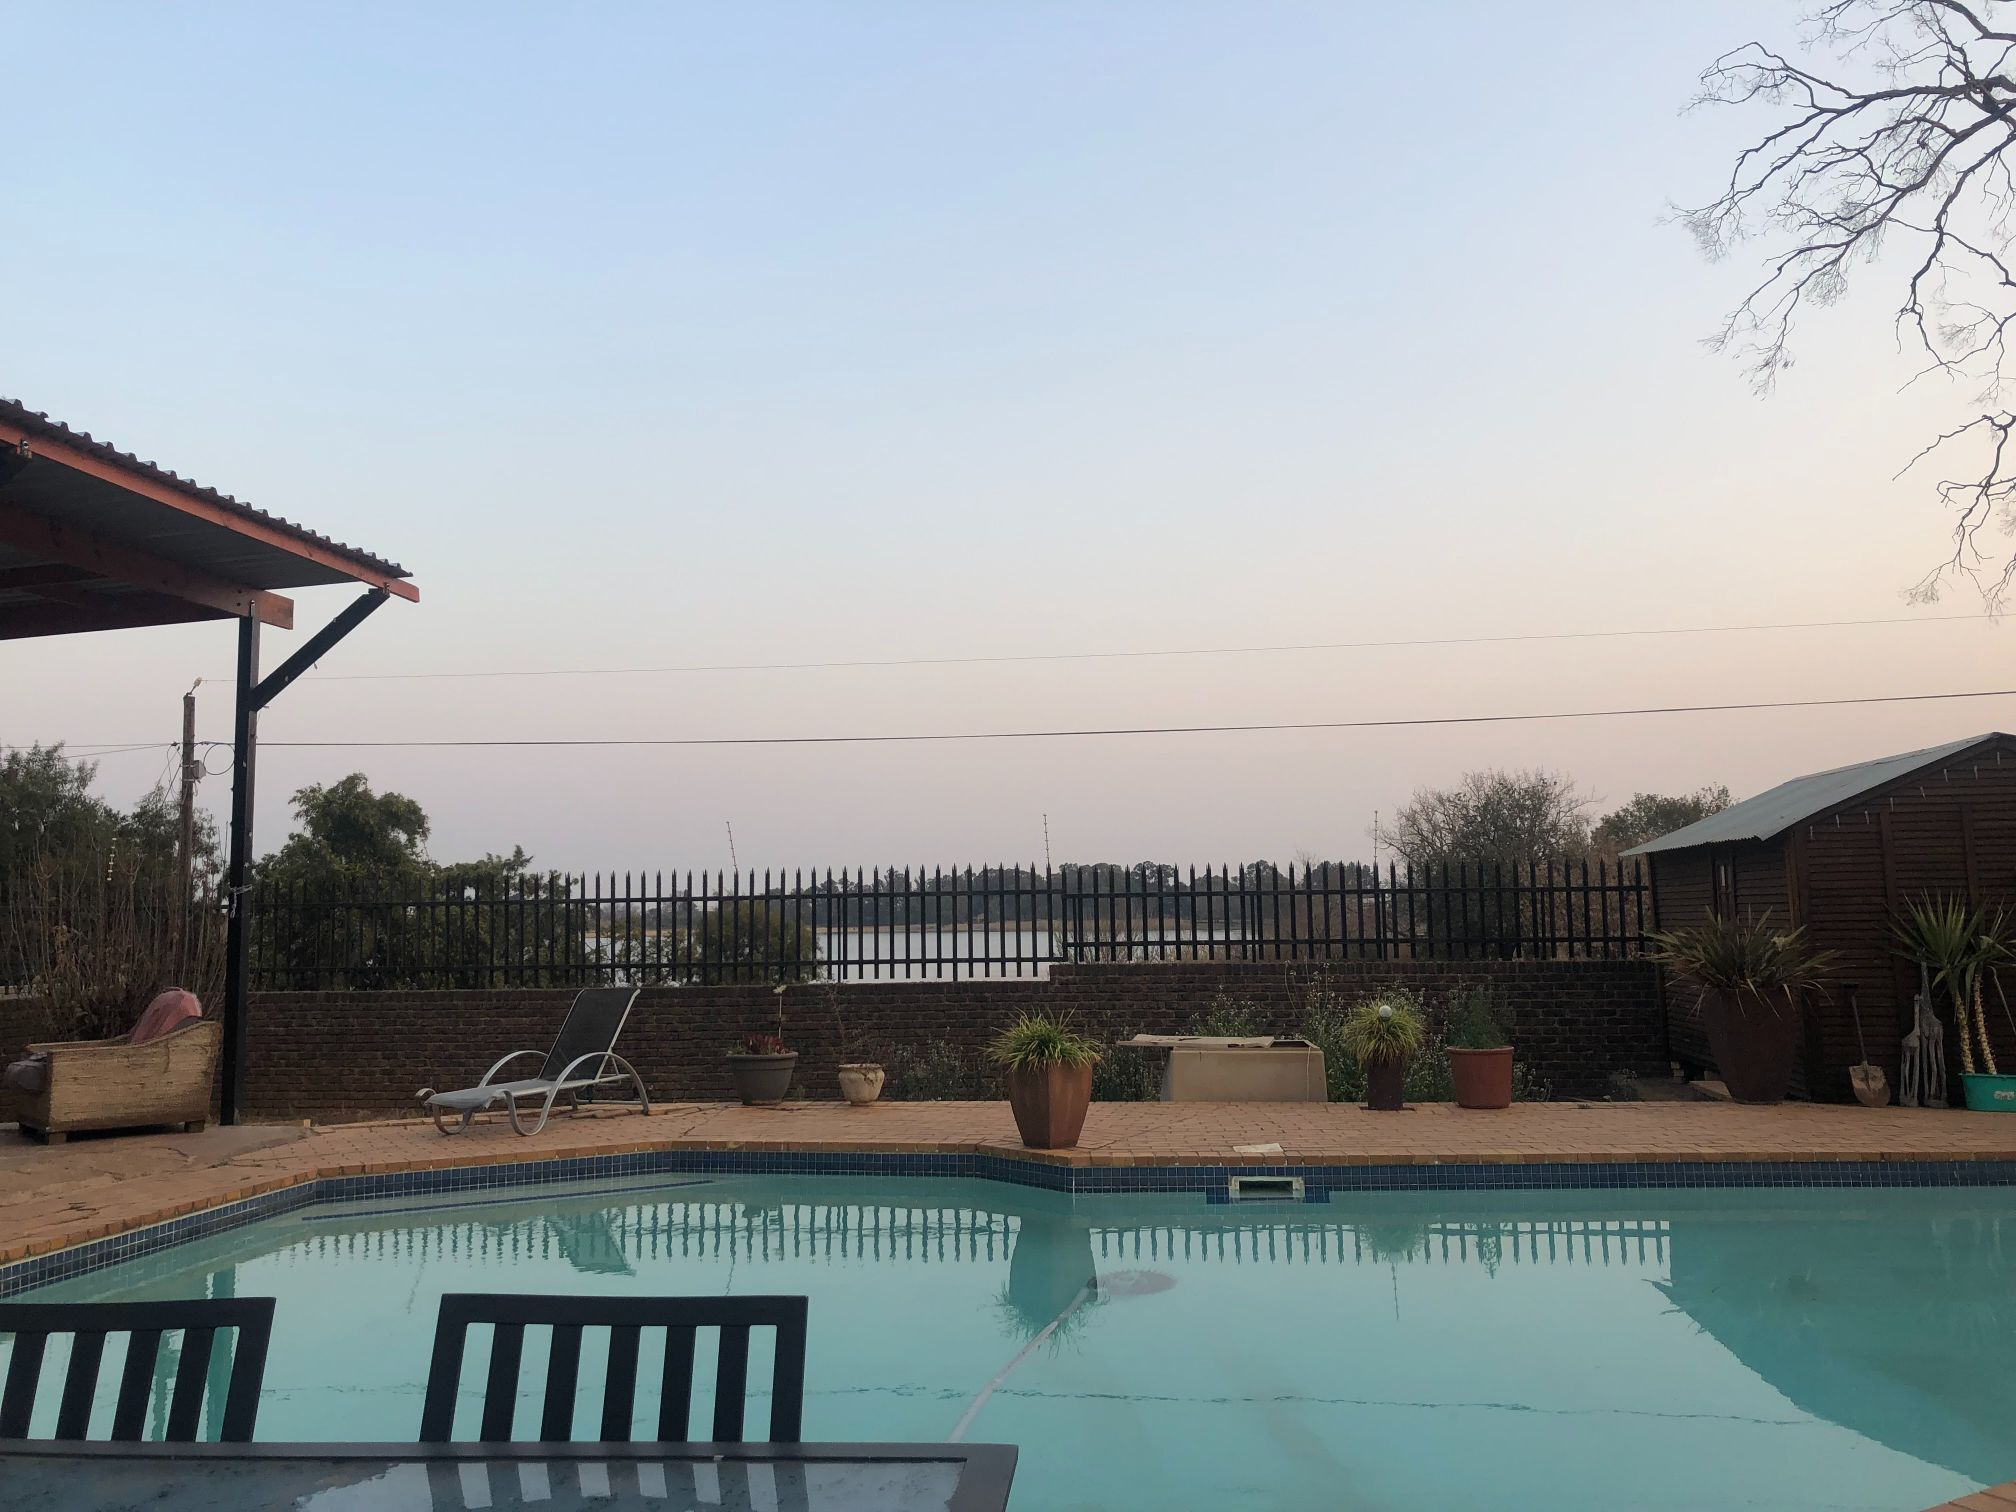 Lakeview backpackers accommodation Johannesburg, near the airport